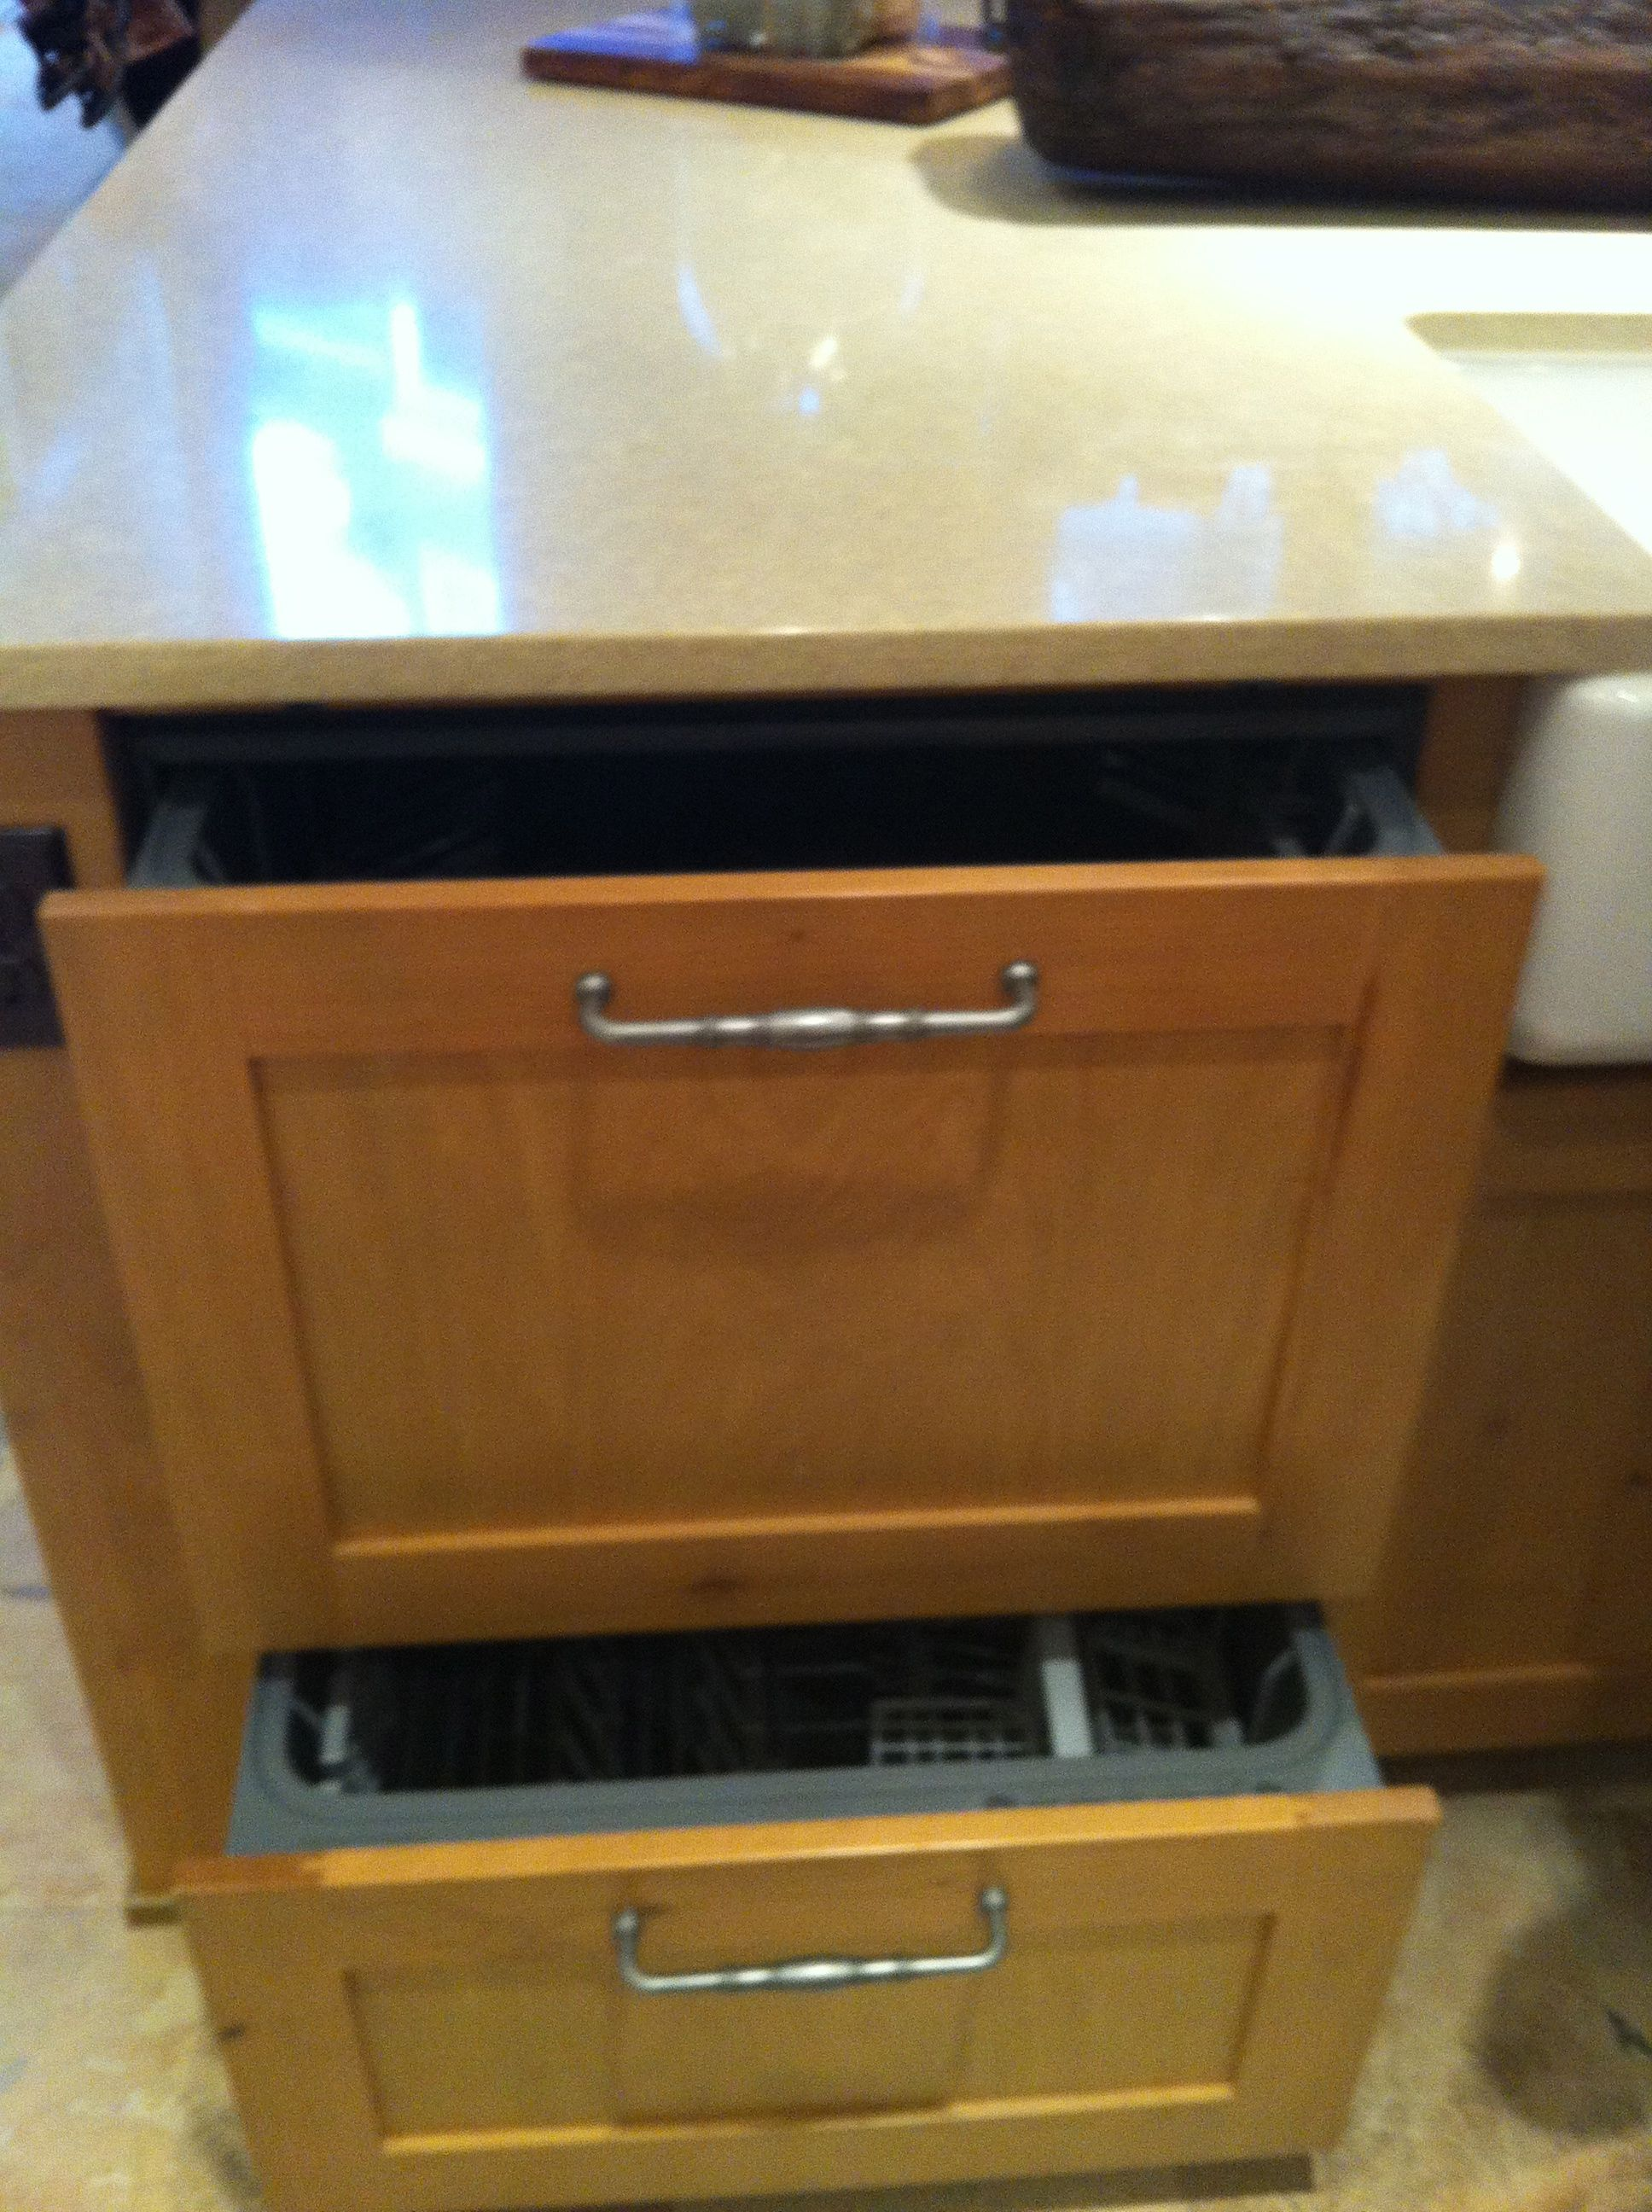 dishwasher winnetka fa high of kitchen ade hides a end behind il the this island inconspicuously in drawer pin